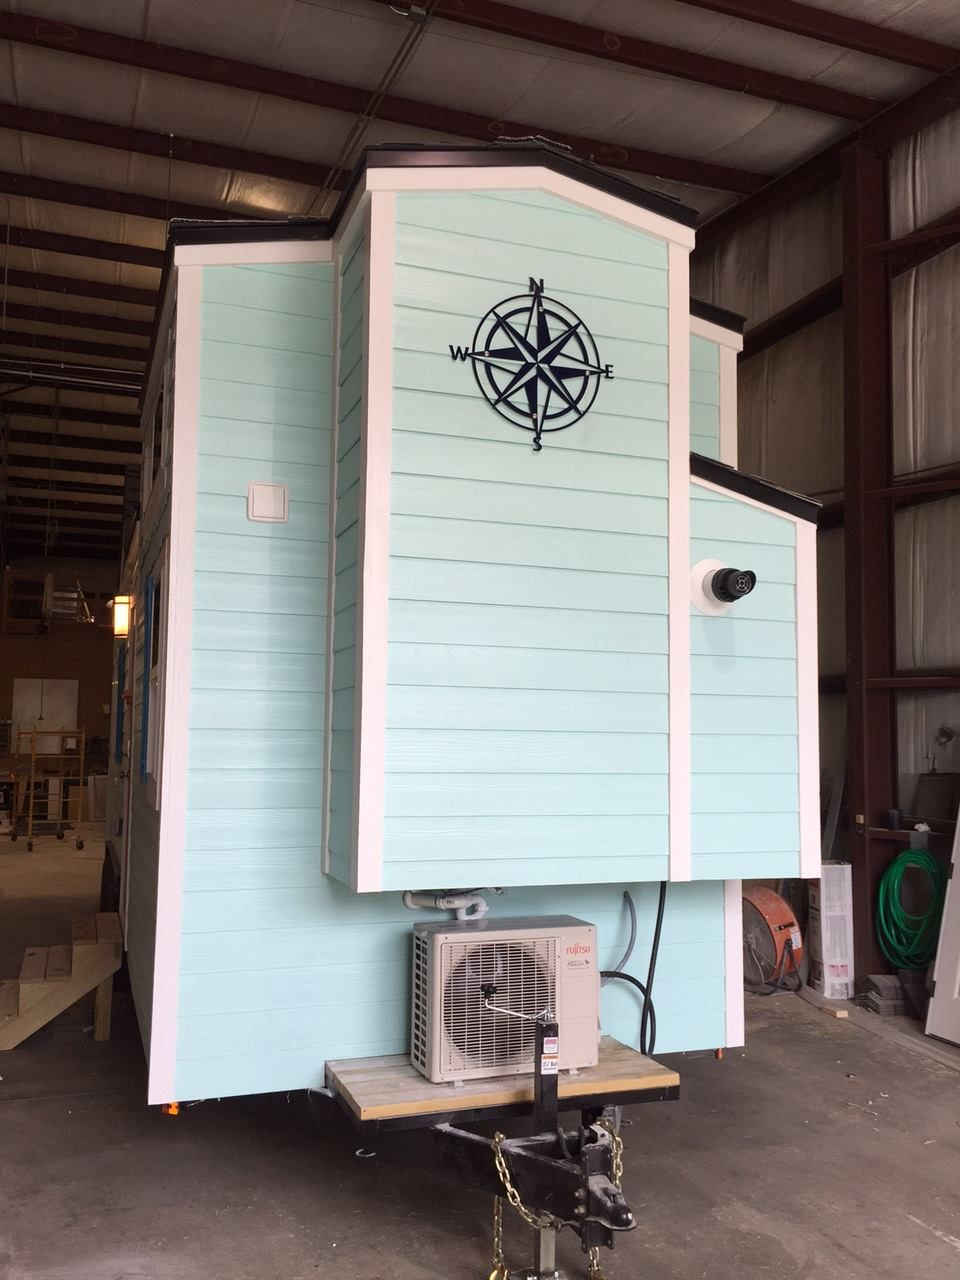 Tiny houses on the beach in florida - This Is The Fontana Beach Tiny House On Wheels By Cornerstone Tiny Homes In Florida And You Re Welcome To Come Check It Out